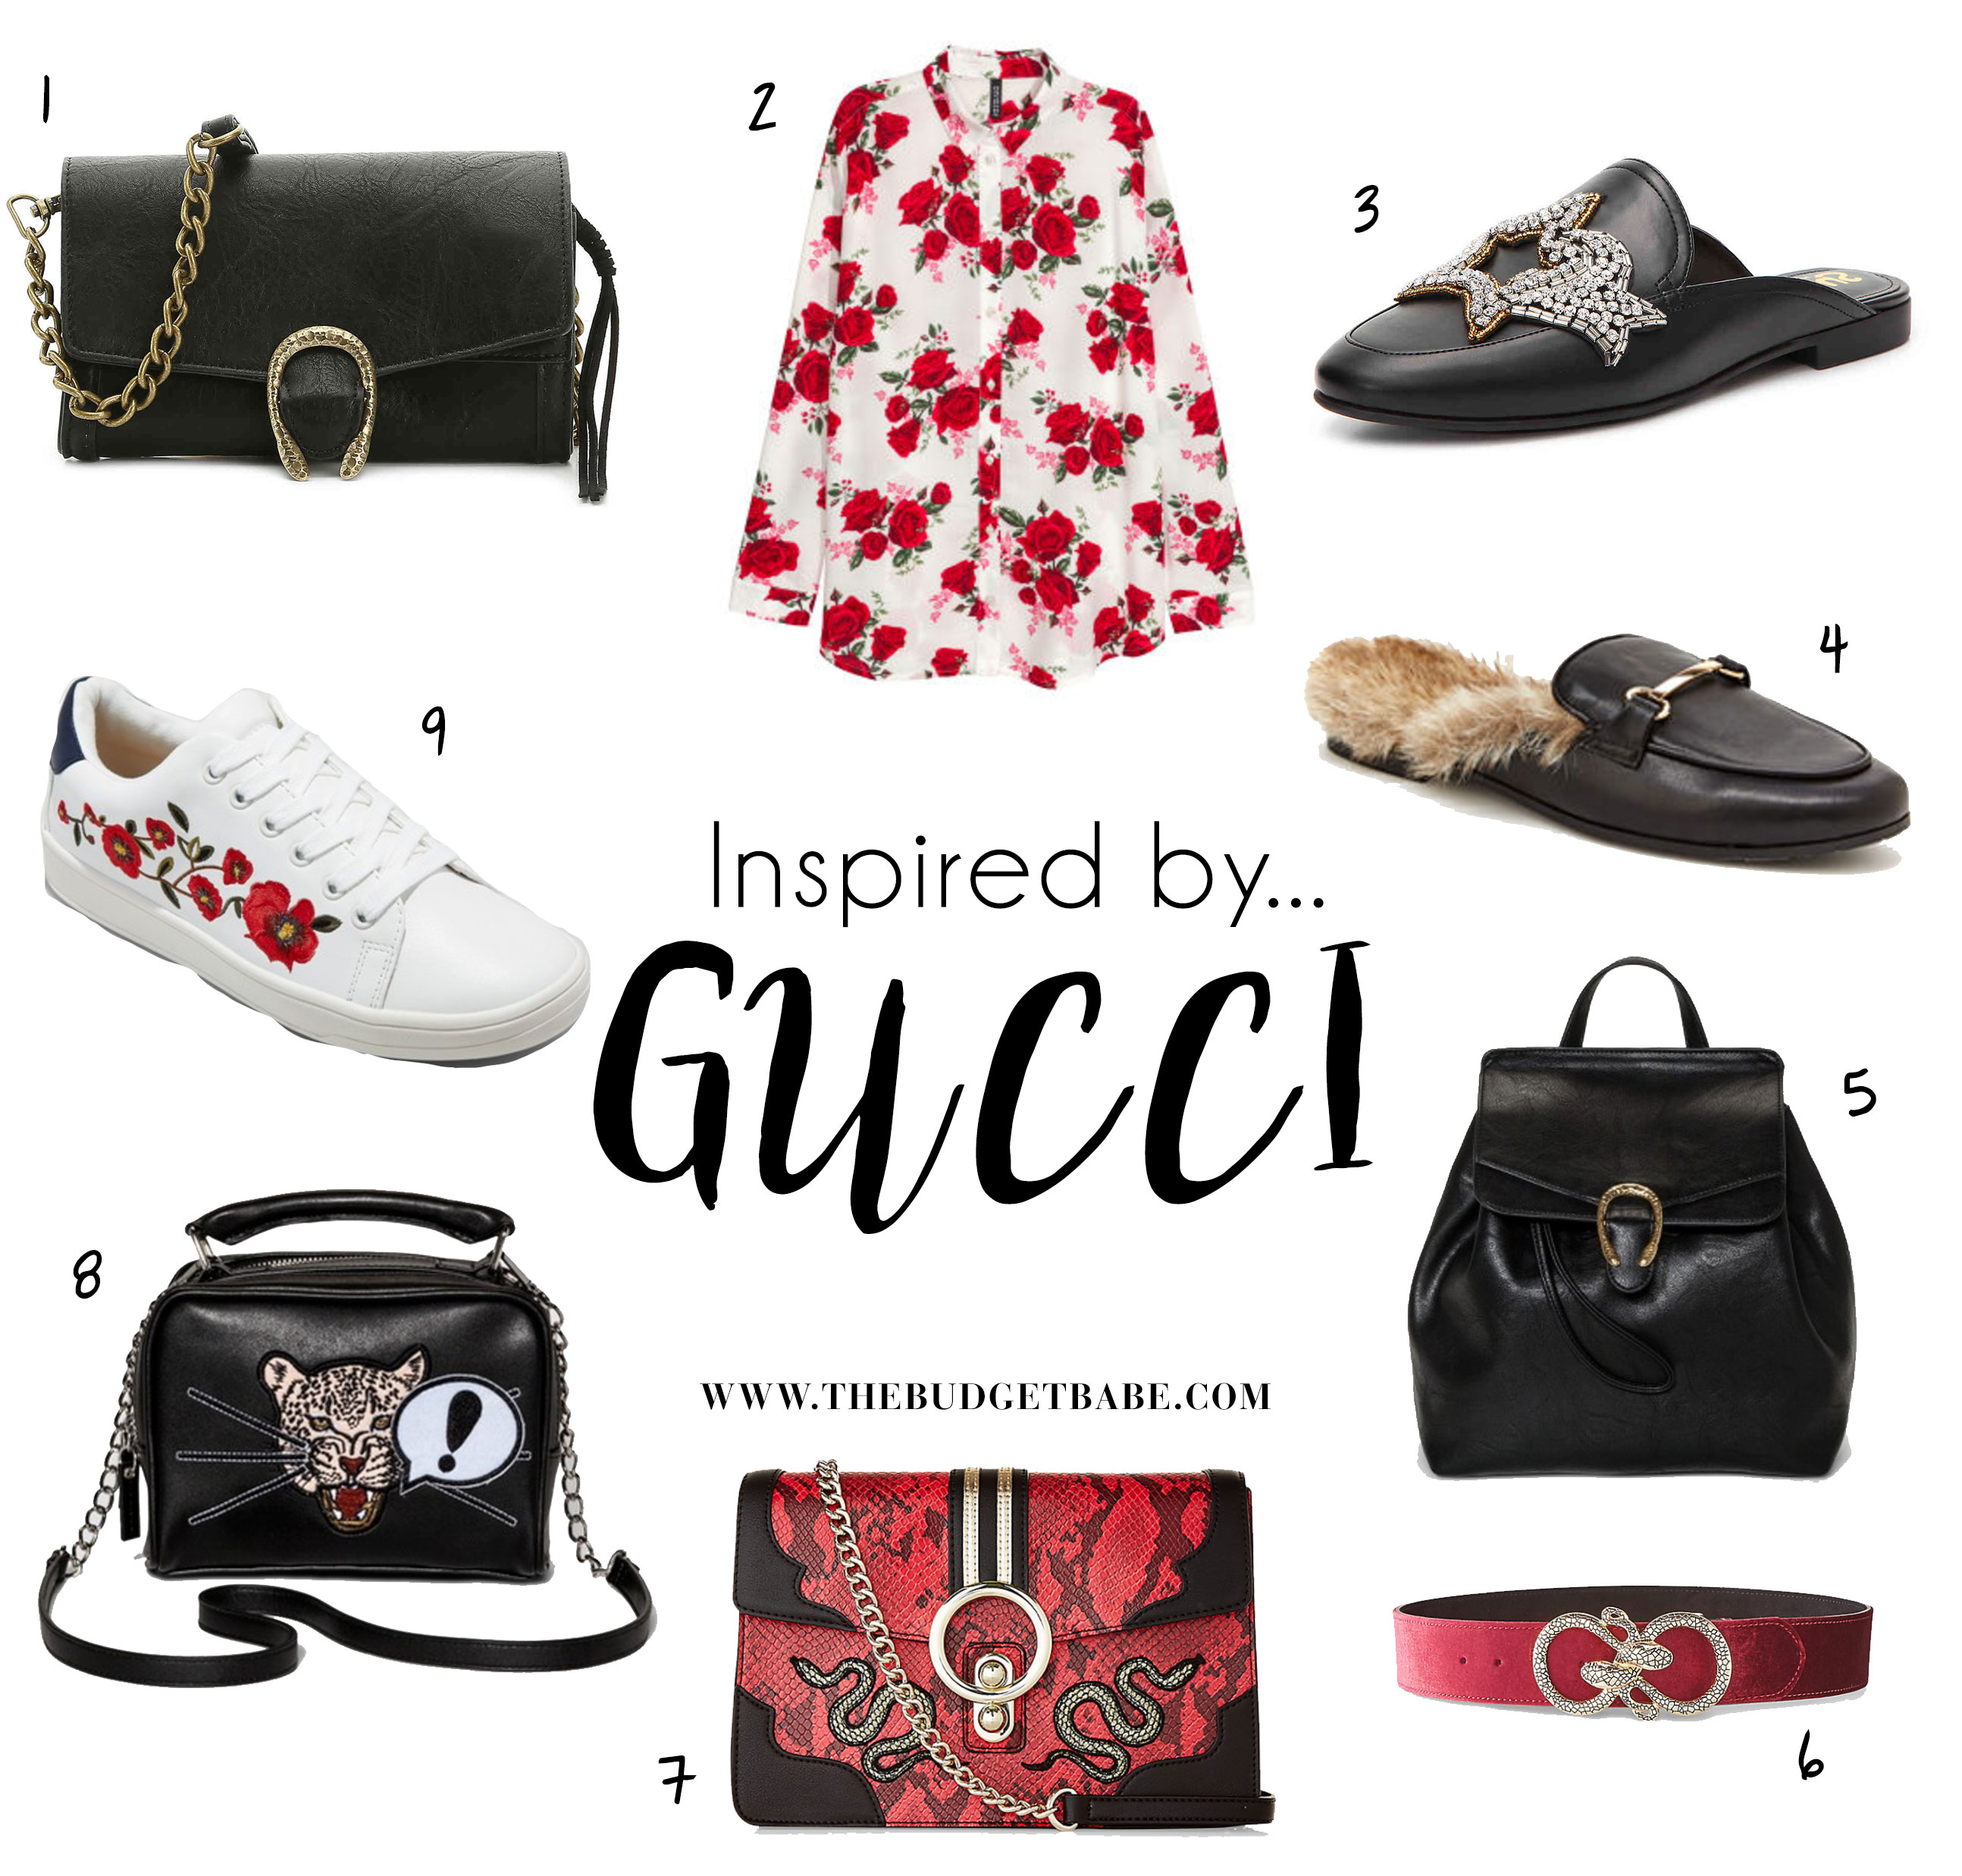 Shop fashions under $50 inspired by Gucci.